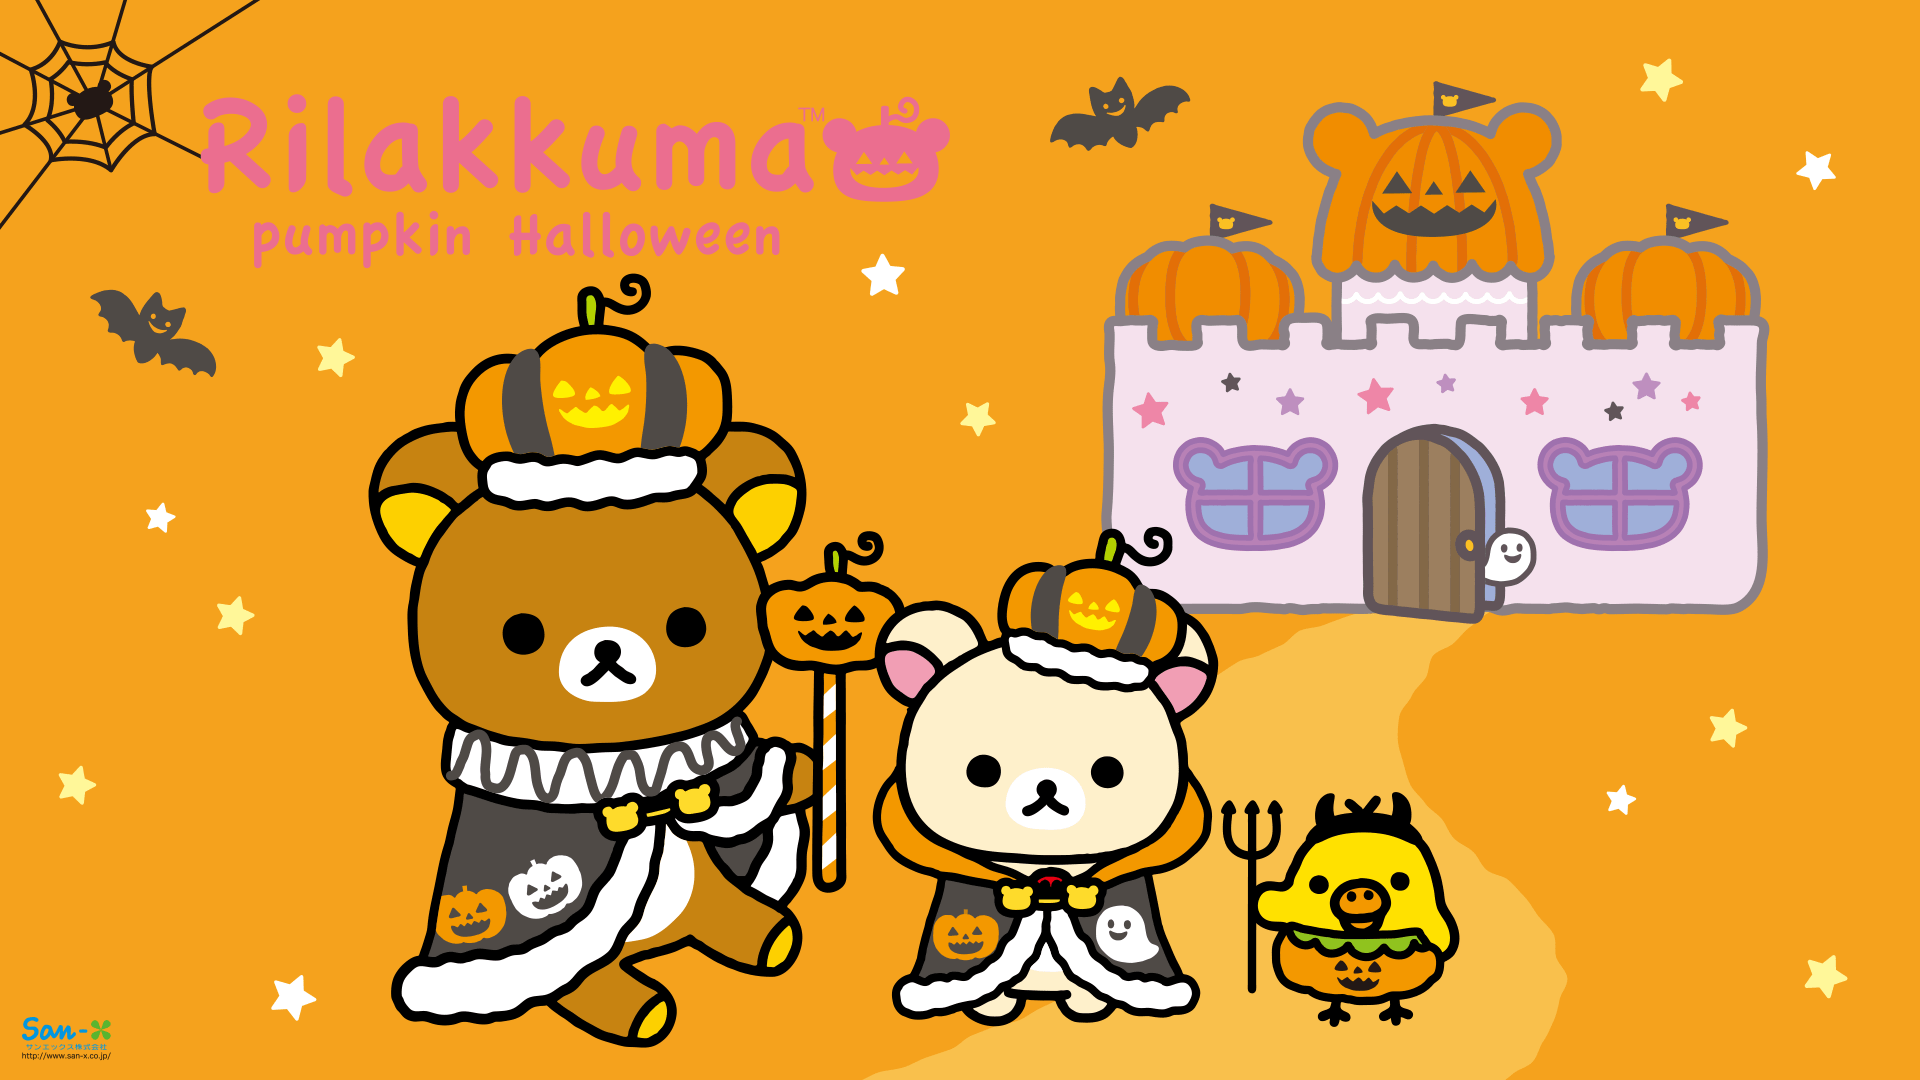 Cute Kitty Wallpaper Desktop Download Rilakkuma Christmas Wallpaper Gallery